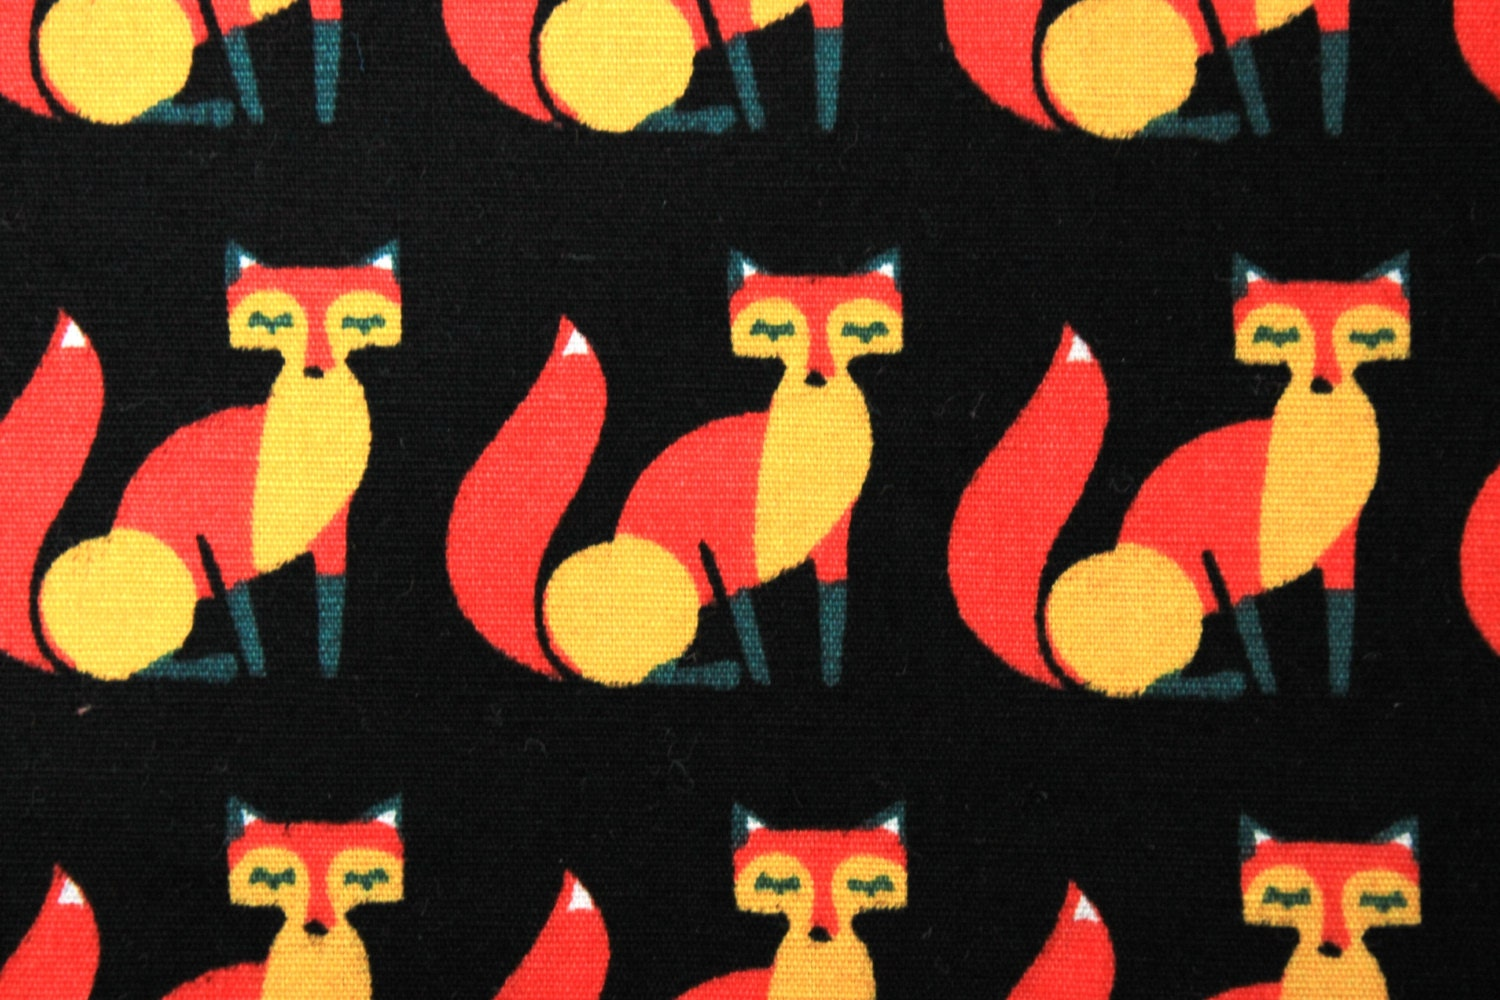 Foxes fabric, Foxes quilting cotton fabric, Vixen fabric UK shop ... : quilting fabric uk - Adamdwight.com